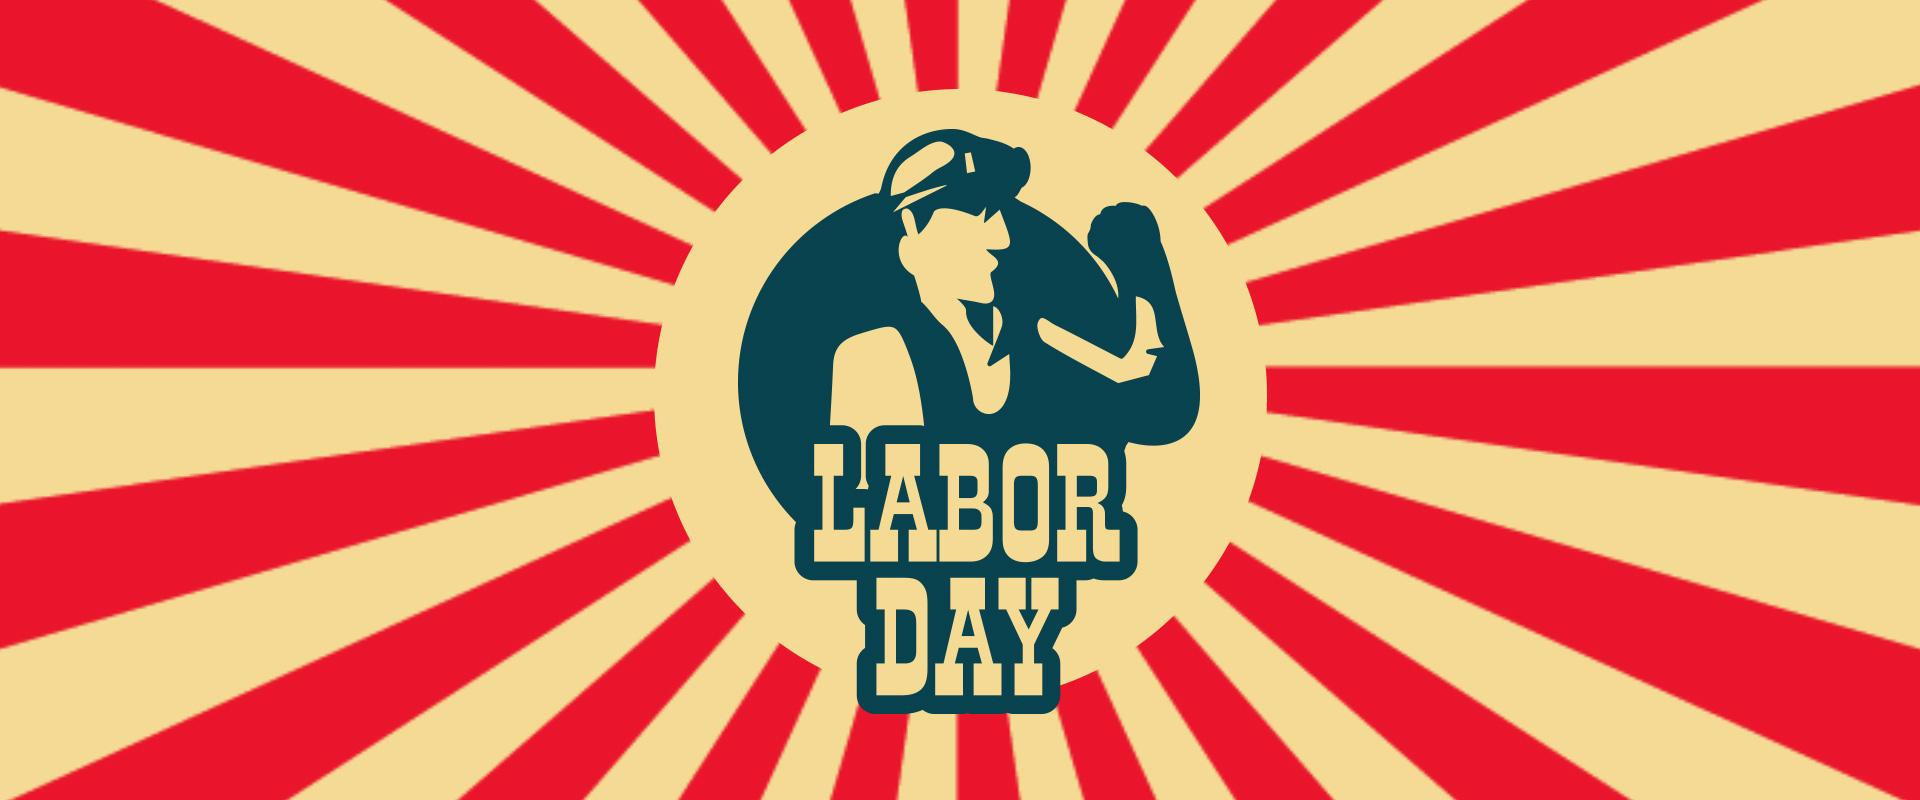 labor day holiday monday - 1500×625